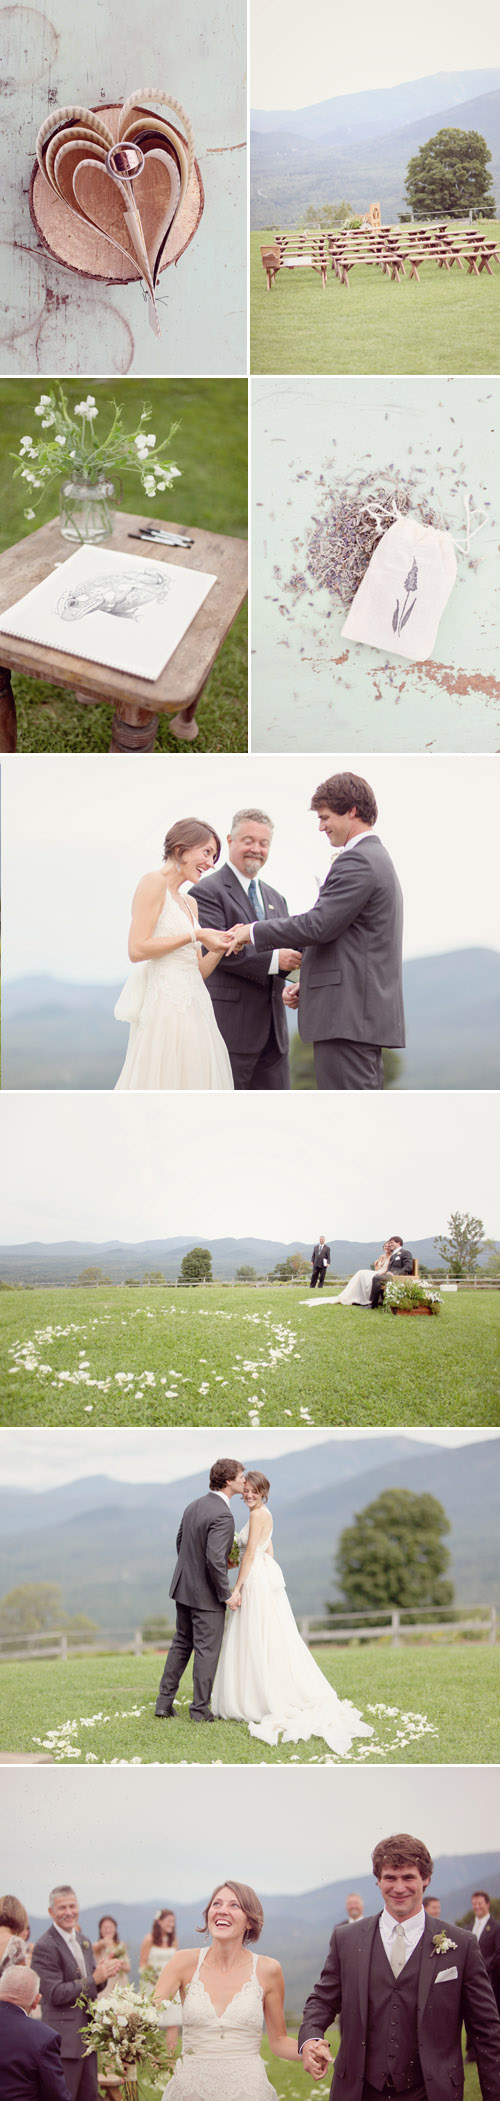 simple and natural mountain wedding at Toad Hill Farm in Franconia, NH, real wedding photos by Simply Bloom Photography